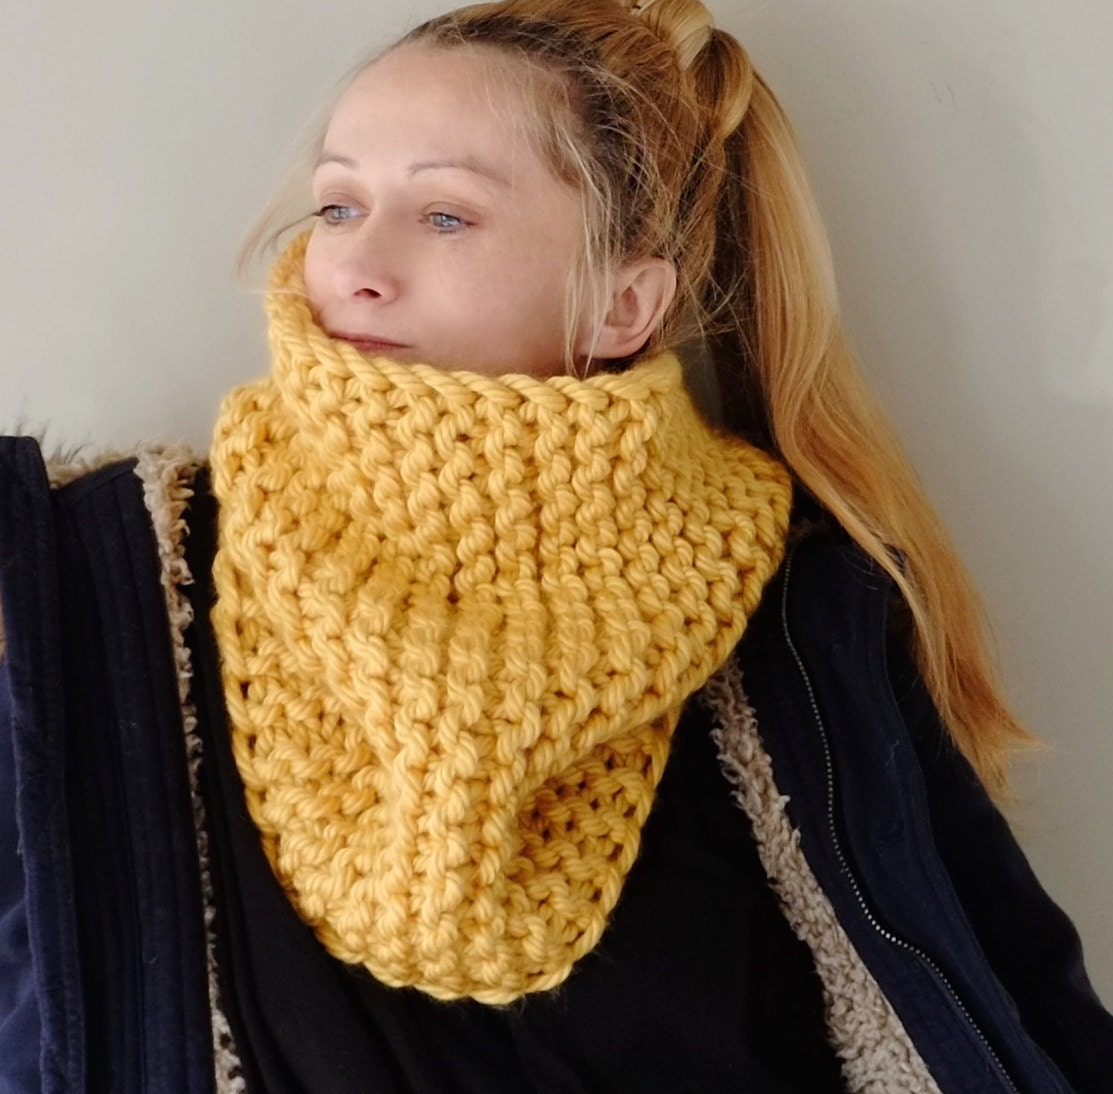 Knit Pattern Cowl Neck Warmer : Chunky Knit Cowl Neck Warmer / Hand Knit Cowl In Yellow